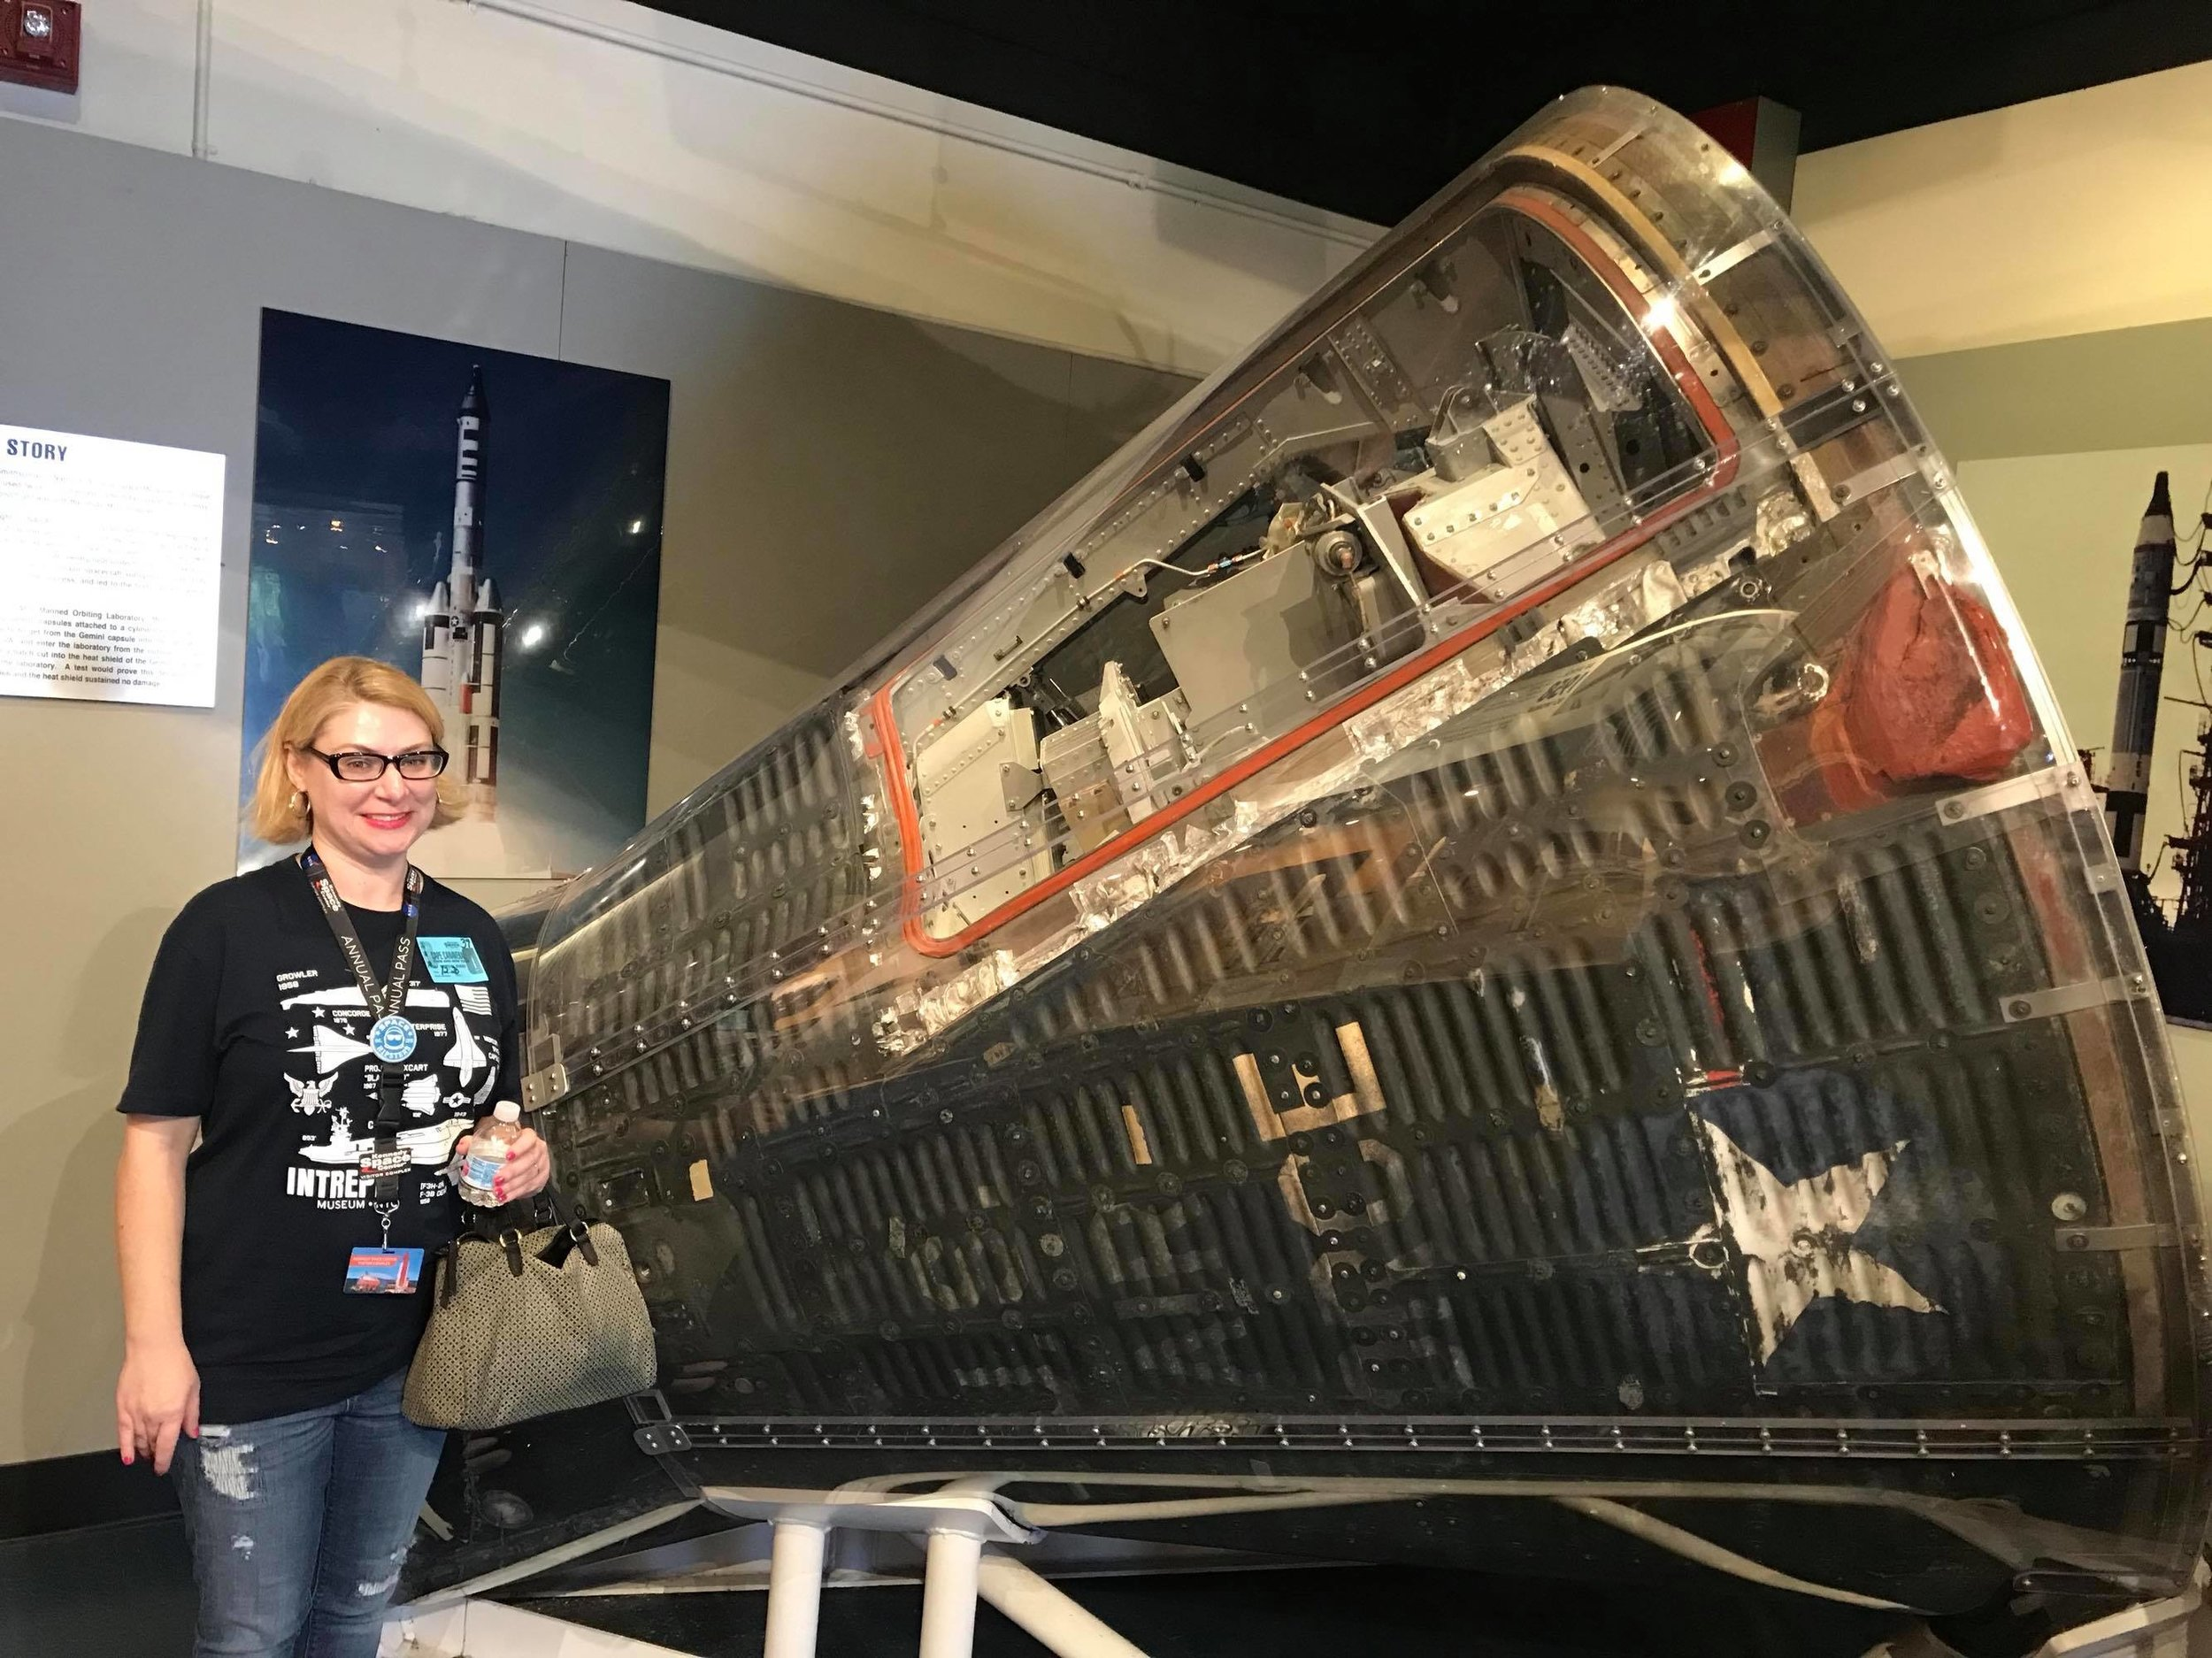 One highlight for Emily was finally getting to see the Gemini 2 capsule!(Photo: Chris Boyd)